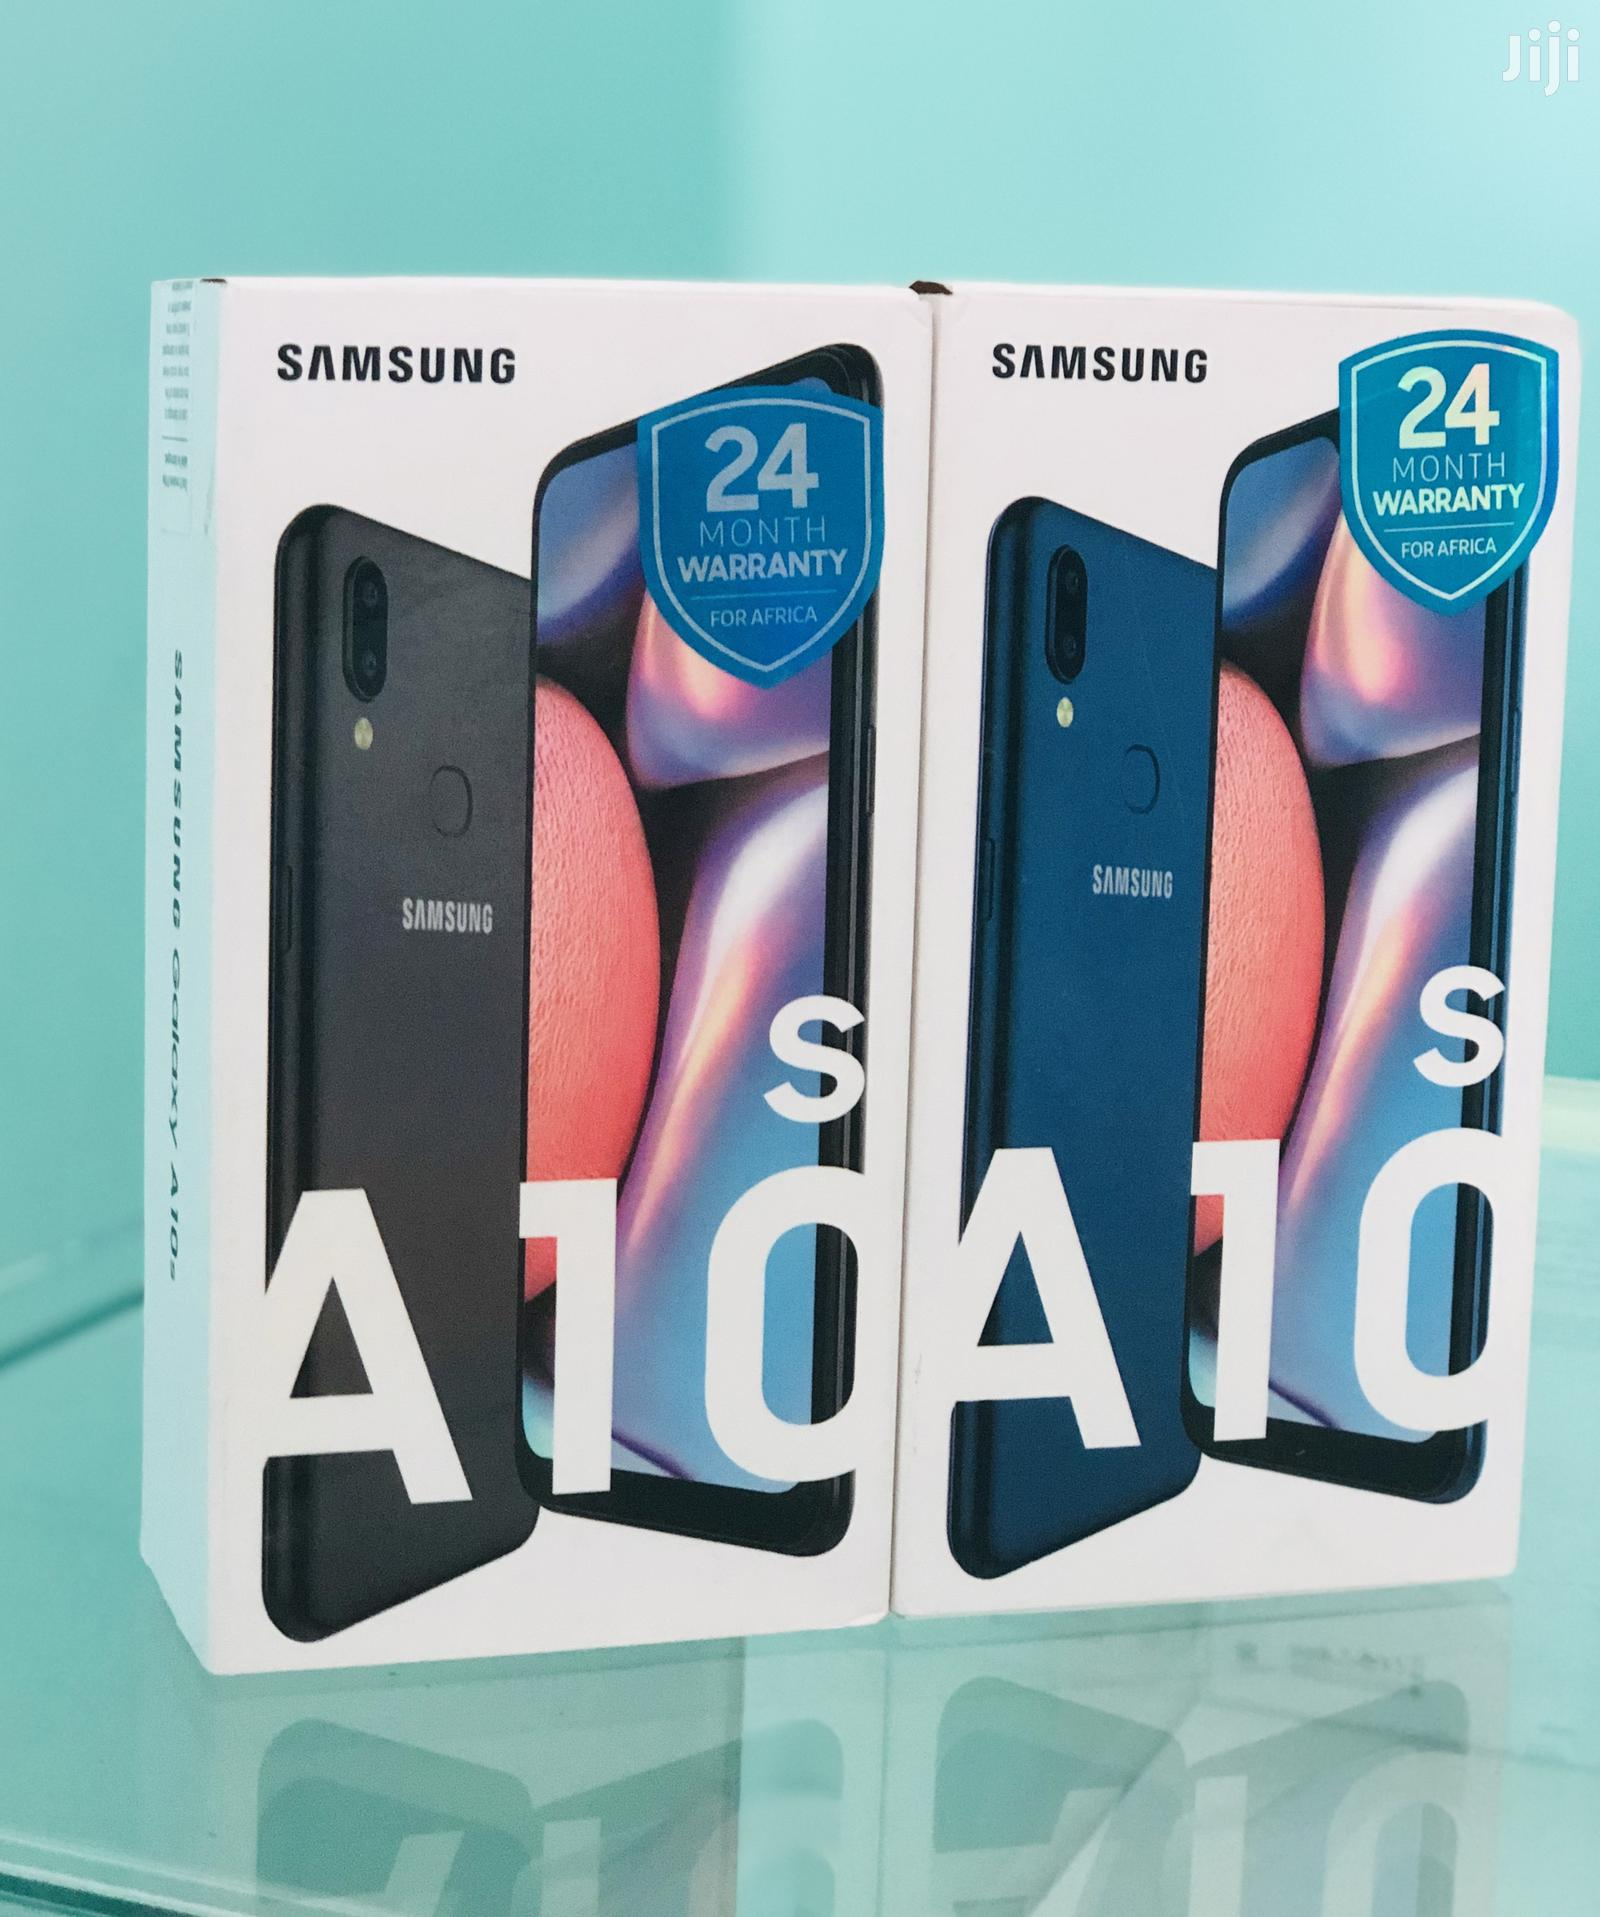 New Samsung Galaxy A10s 32 GB Black | Mobile Phones for sale in Ilala, Dar es Salaam, Tanzania